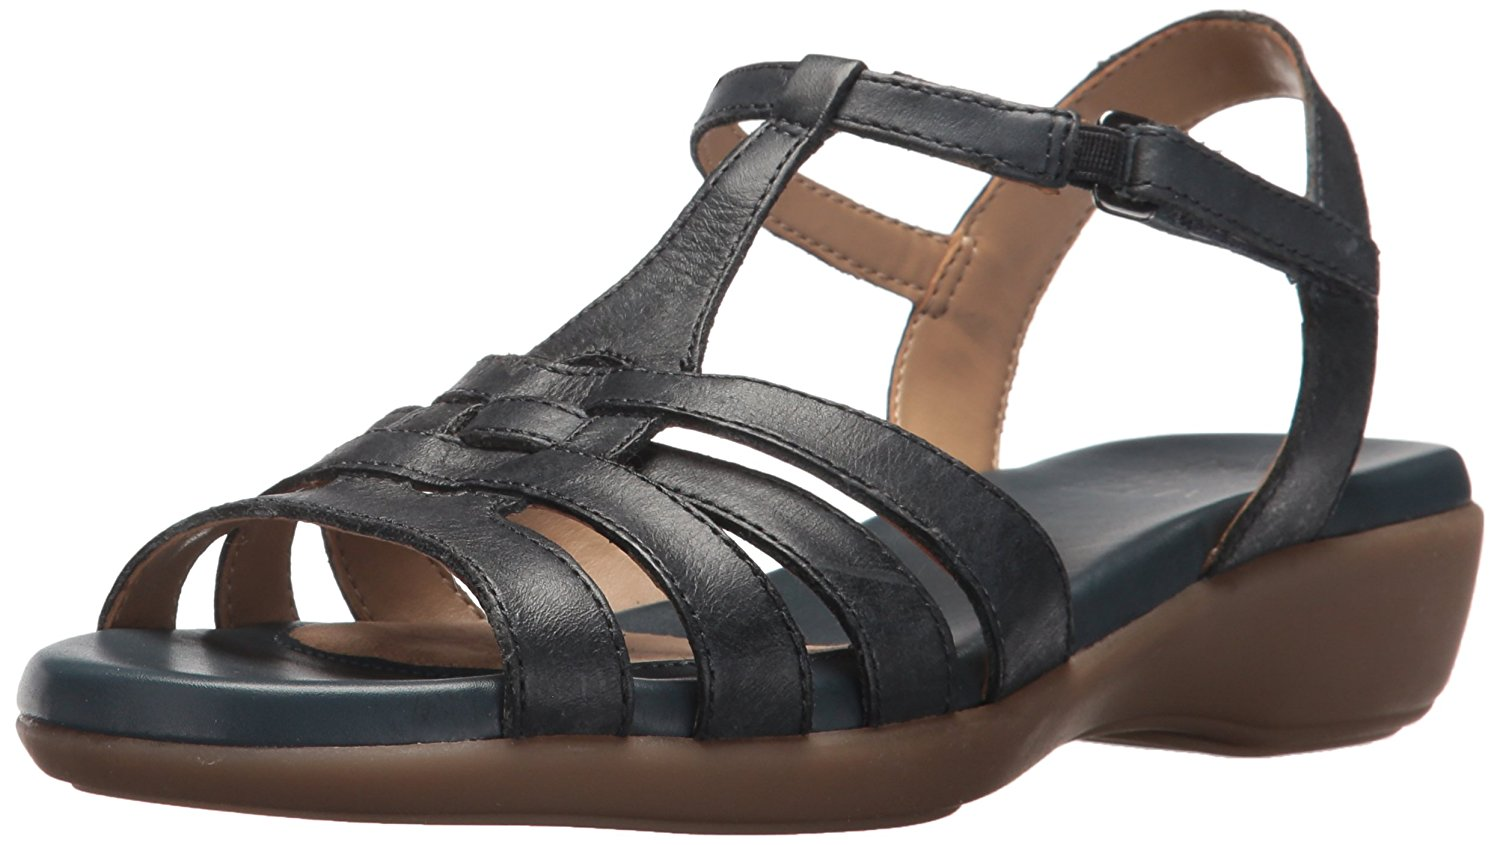 Naturalizer Damenschuhe Nanci Leder Open Casual Toe Casual Open T-Strap  Denim  Größe 6.0 rO2u c12c31